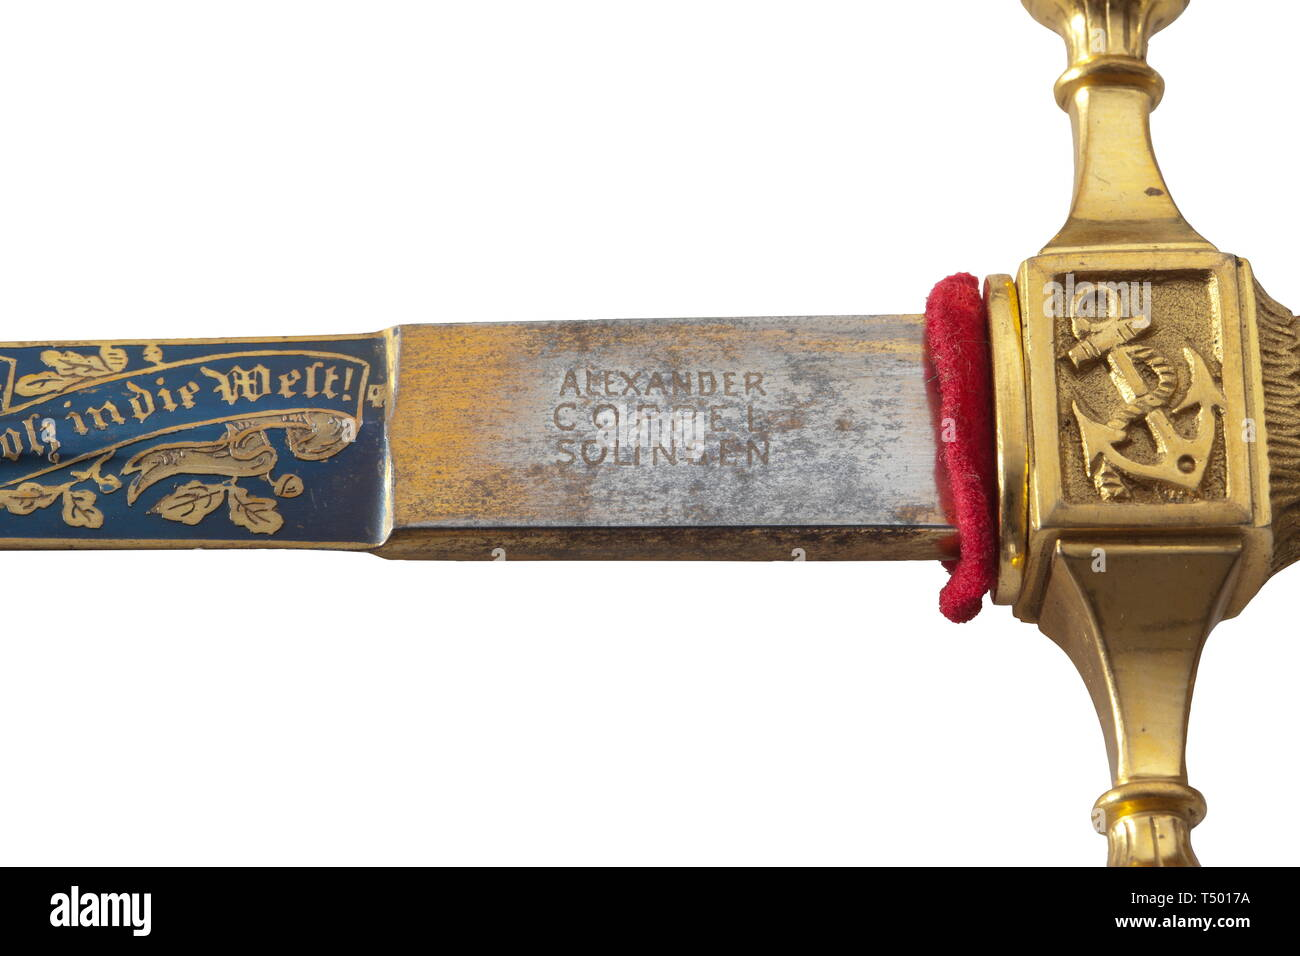 Count Felix von Luckner (1881 - 1966) - an honour dagger of the Luckner Society, Düsseldorf, patterned after the dagger for officers of the Imperial German navy, the blade with double fullers on each side, and etched, blued, and gilded (worn in places). It bears the manufacturer's stamp 'Alexander Coppel, Solingen' and Count von Luckner's family coat of arms framed by naval motifs along with the inscription (tr) 'Bravery Brings Renown - From German 20th century, Editorial-Use-Only - Stock Image